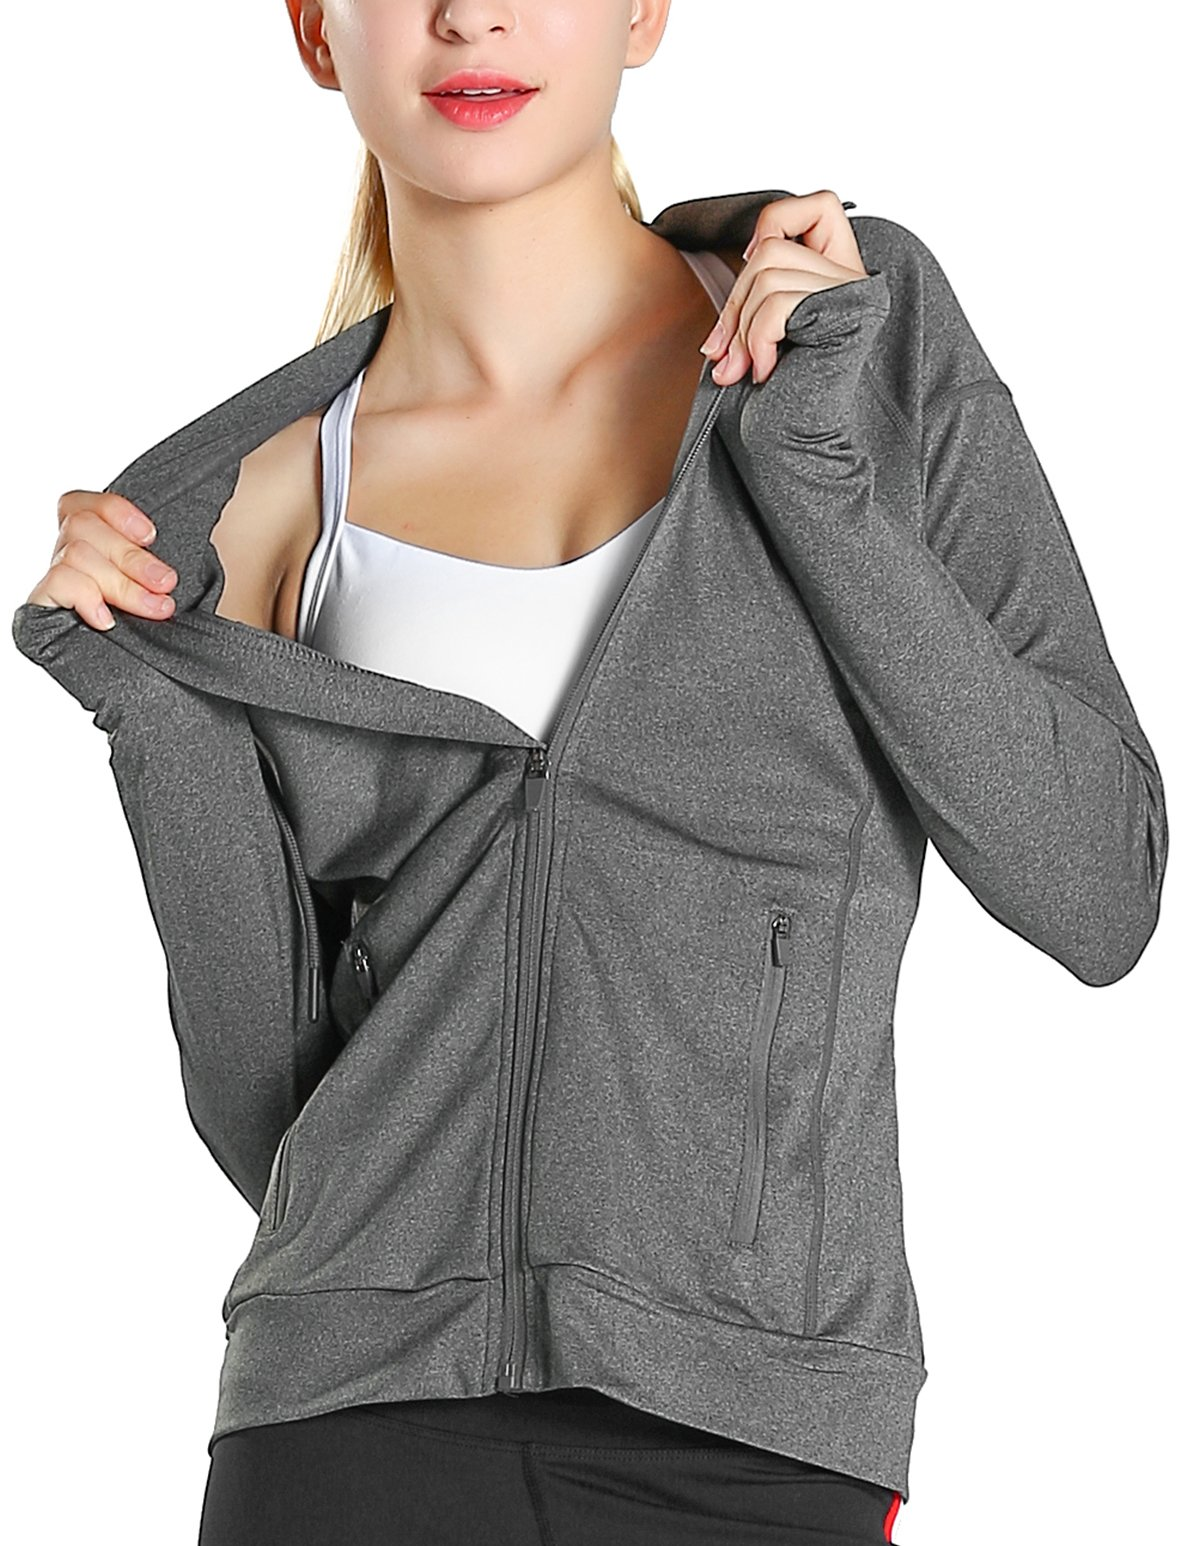 Fastorm Womens Full Zip Athletic Jacket Hoodie Activewear Workout Sweatshirt Track Jackets with Thumb Holes Grey L by Fastorm